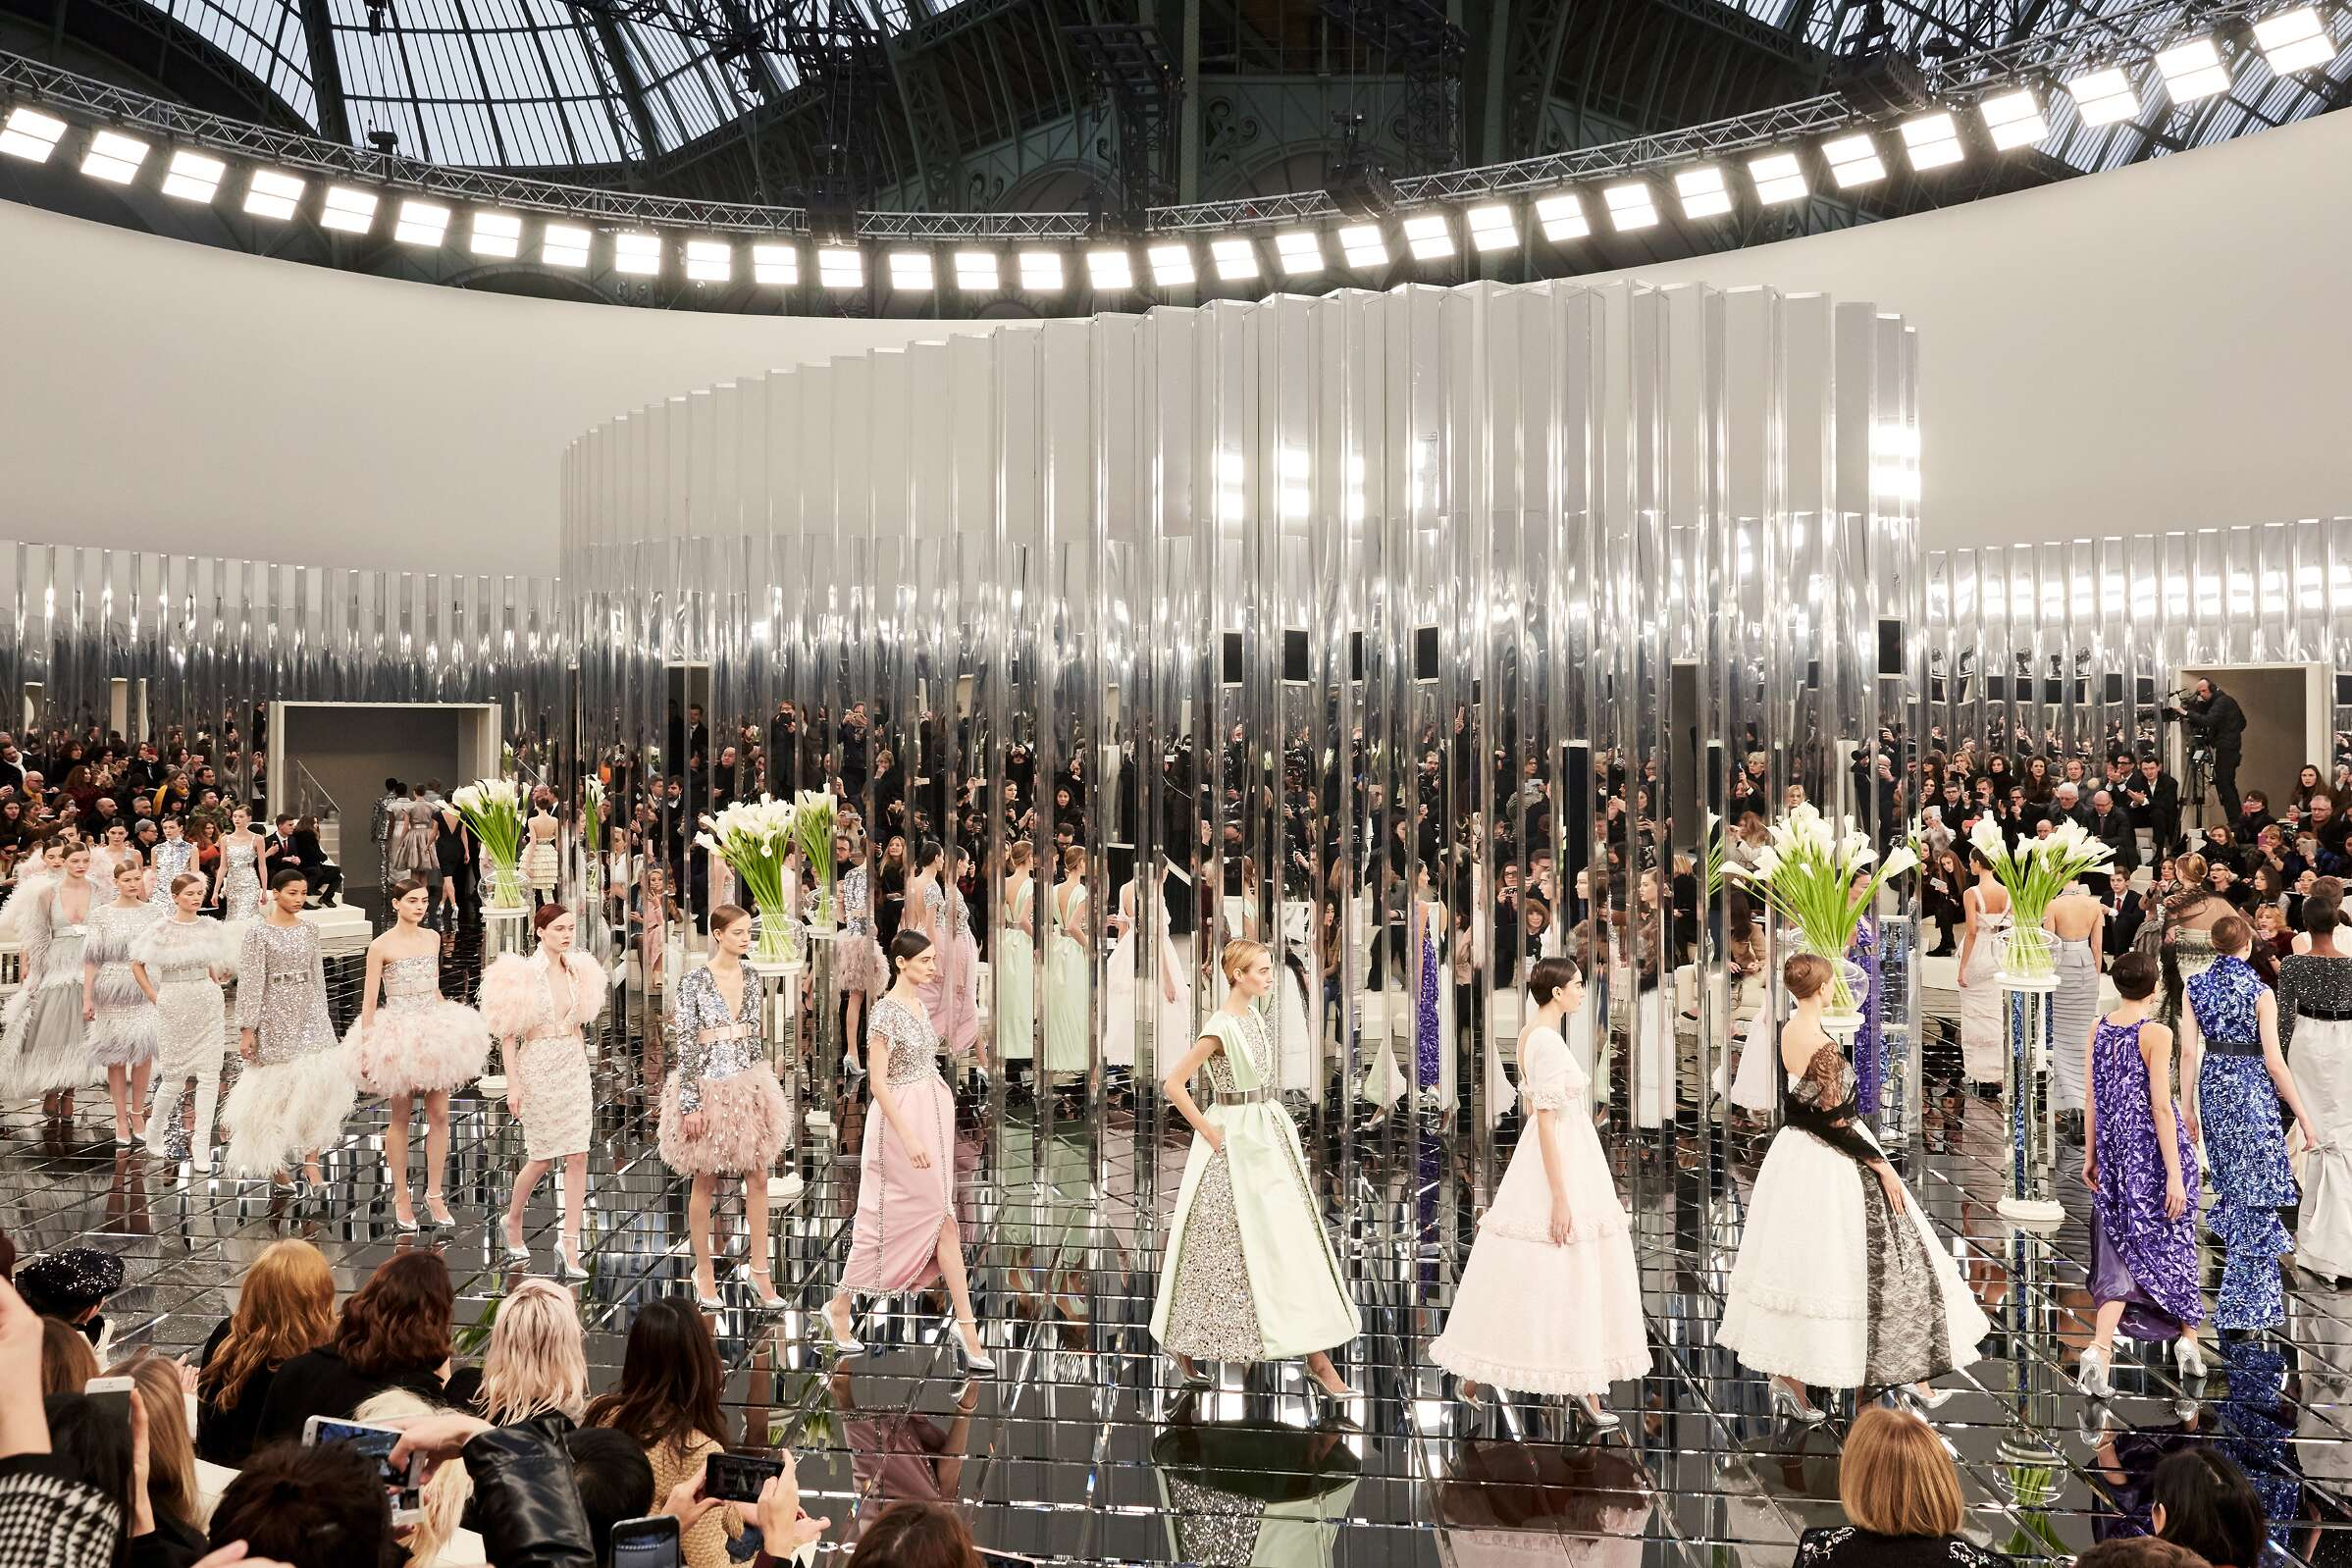 Finale Models SS 2017 Fashion Show Chanel Haute Couture